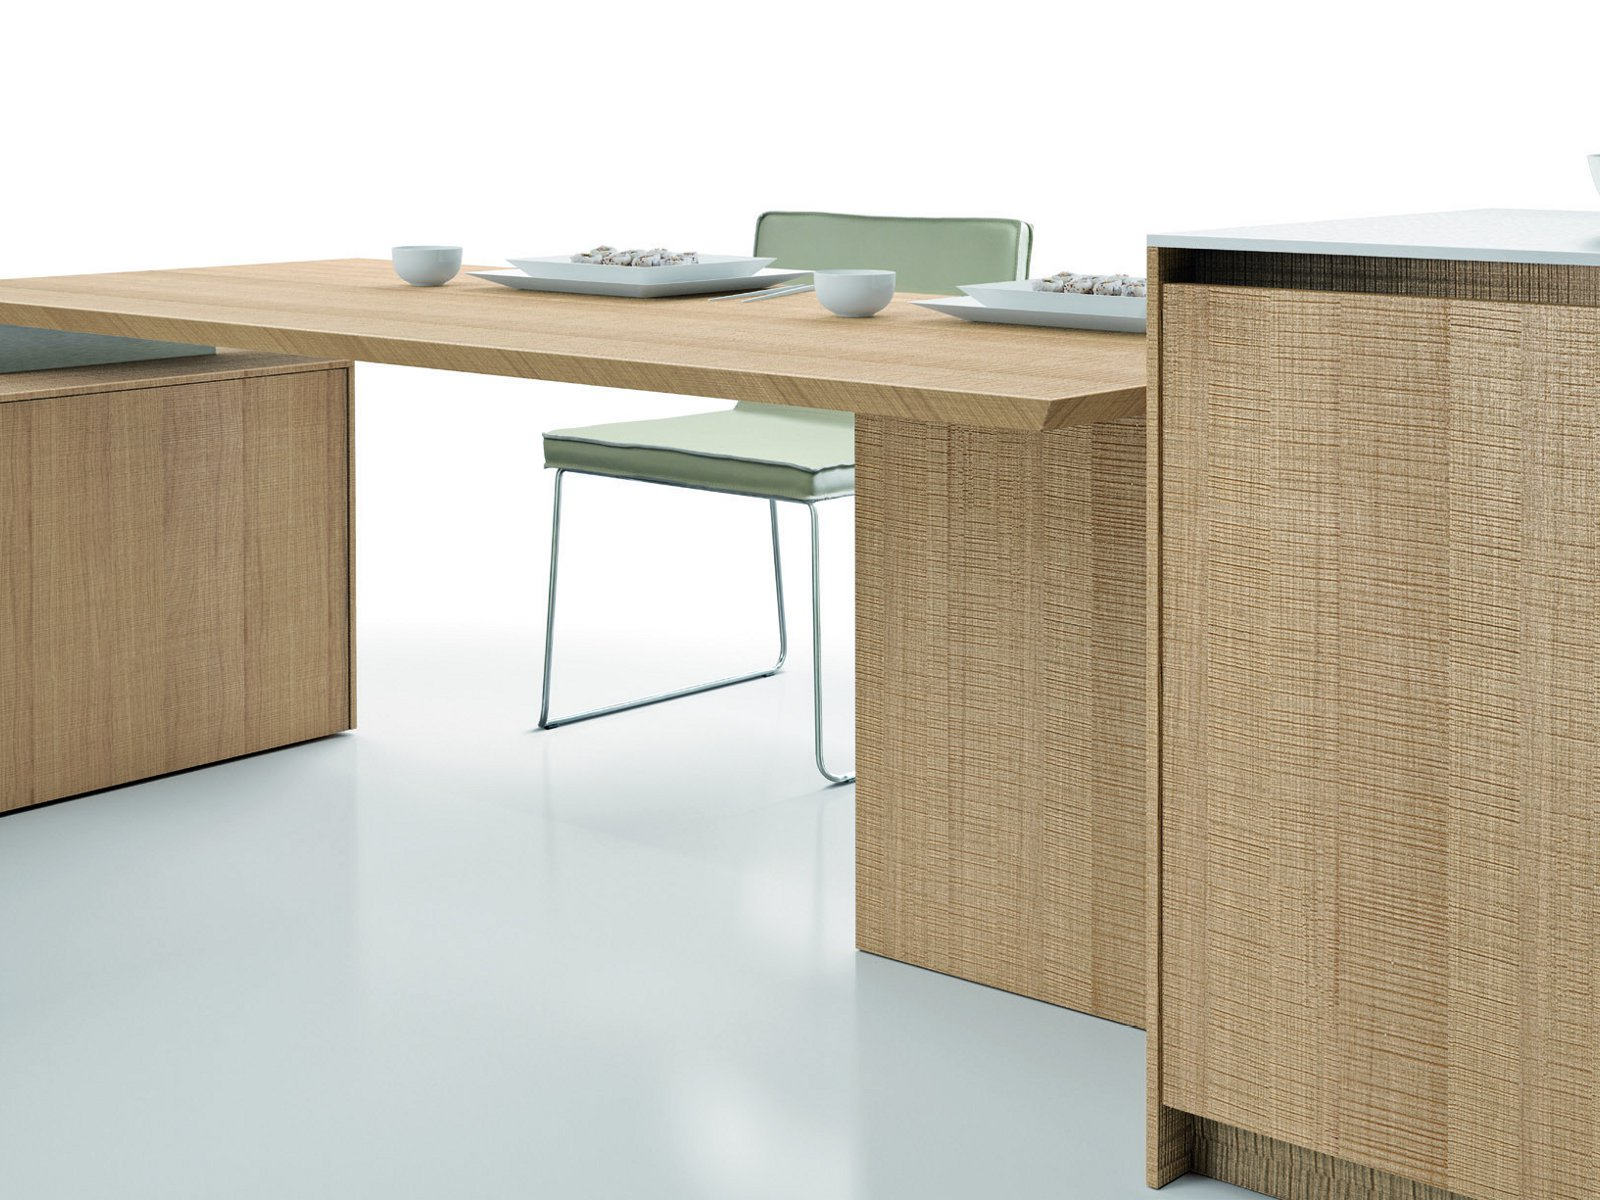 Wooden fitted kitchen filo antis assim assim collection for Wooden fitted kitchen